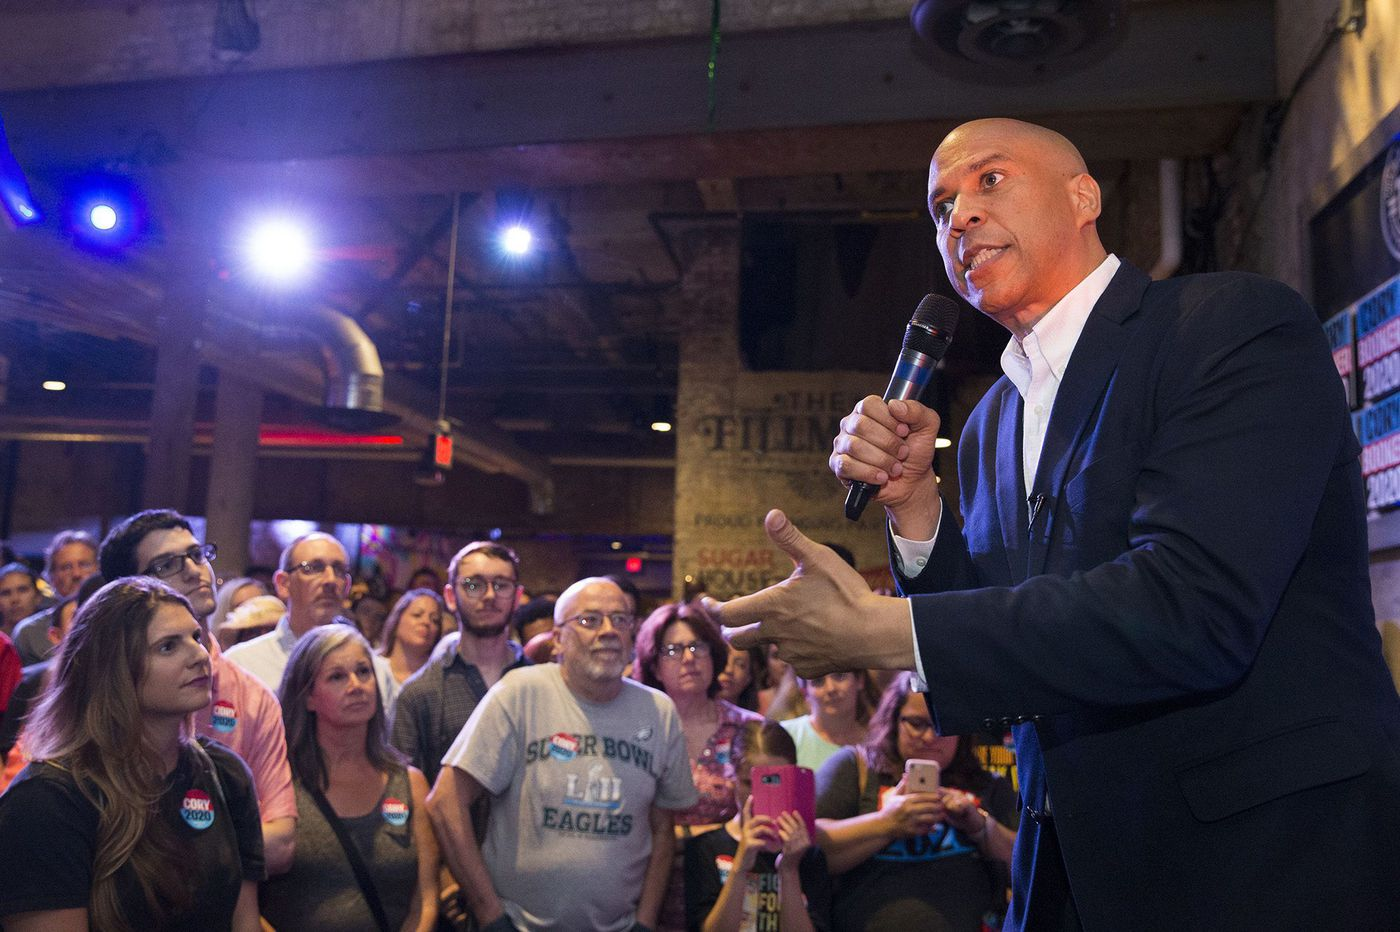 Cory Booker defends ties to George Norcross and county exec whose jail houses ICE detainees